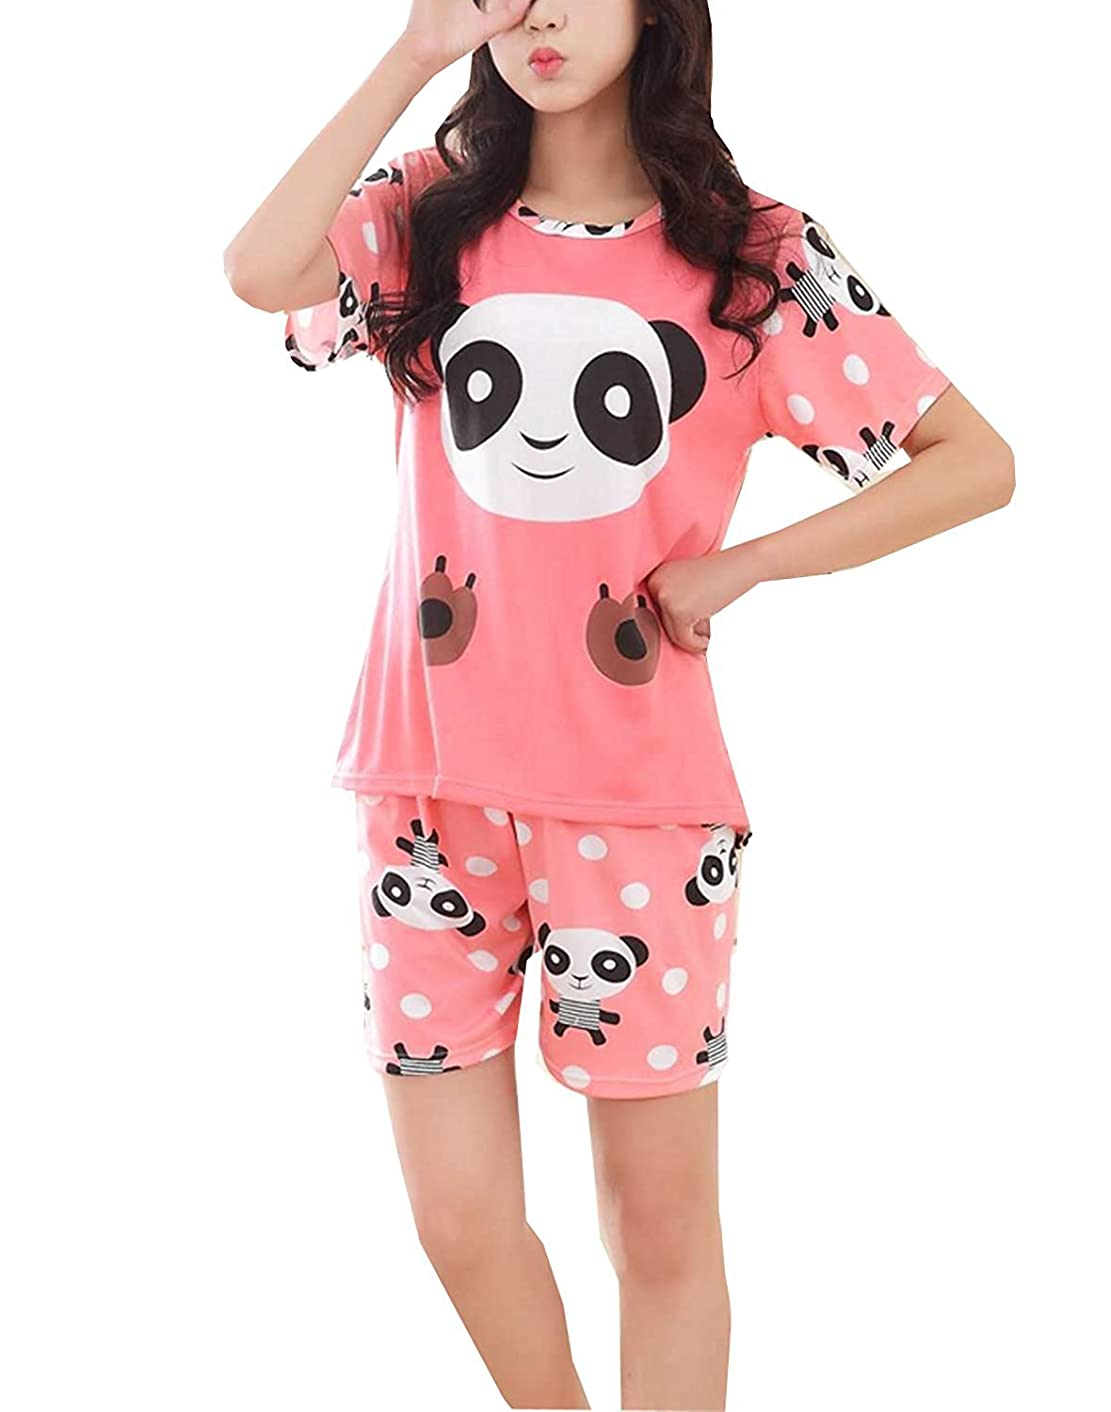 Teen Big Girls Summer Shorts Pajama Cute Panda Sleepwear